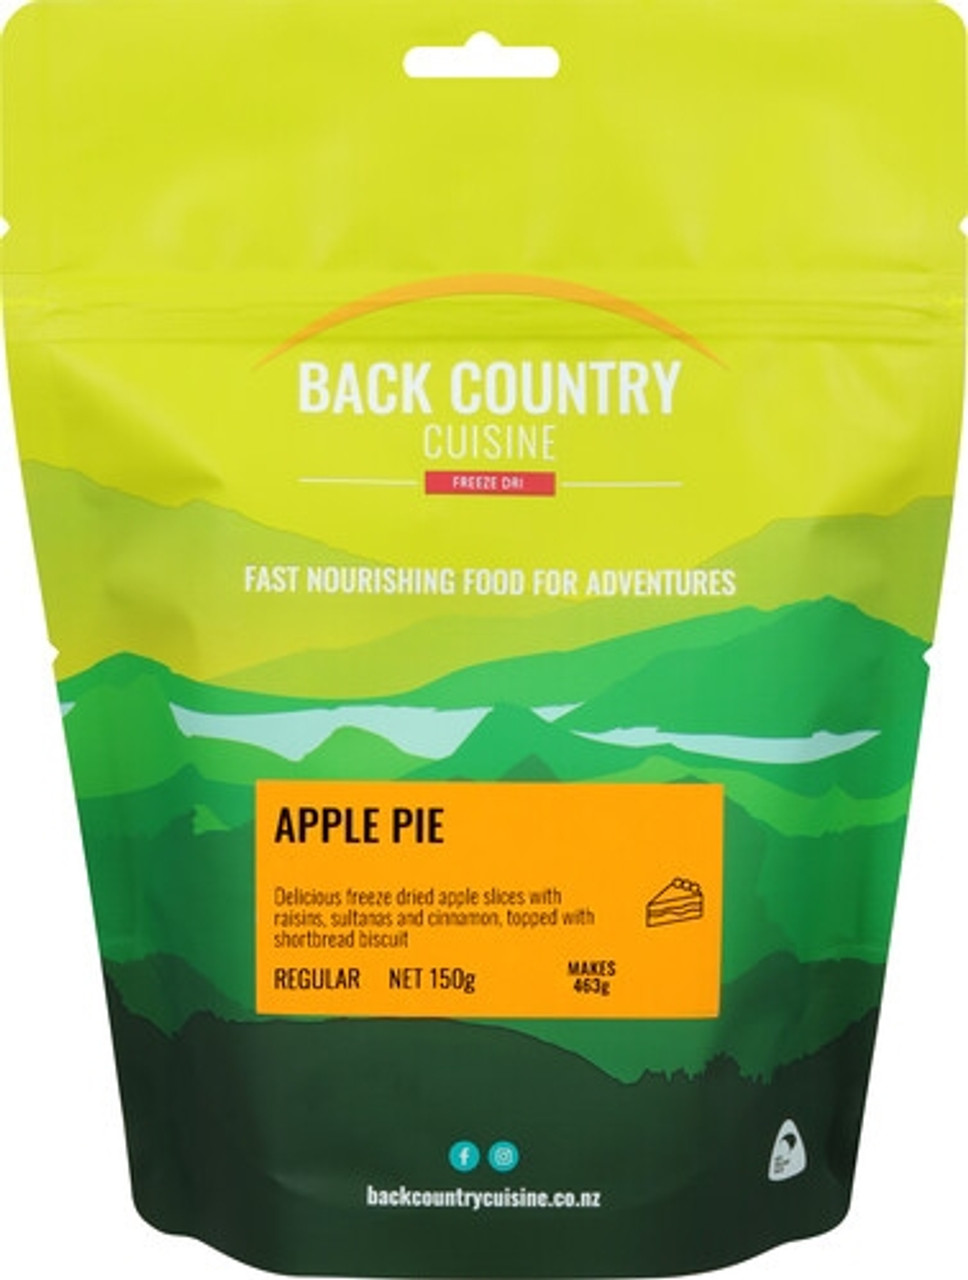 Back Country Cuisine Desert: Apple Pie Online at Mountain Mail Order South Africa